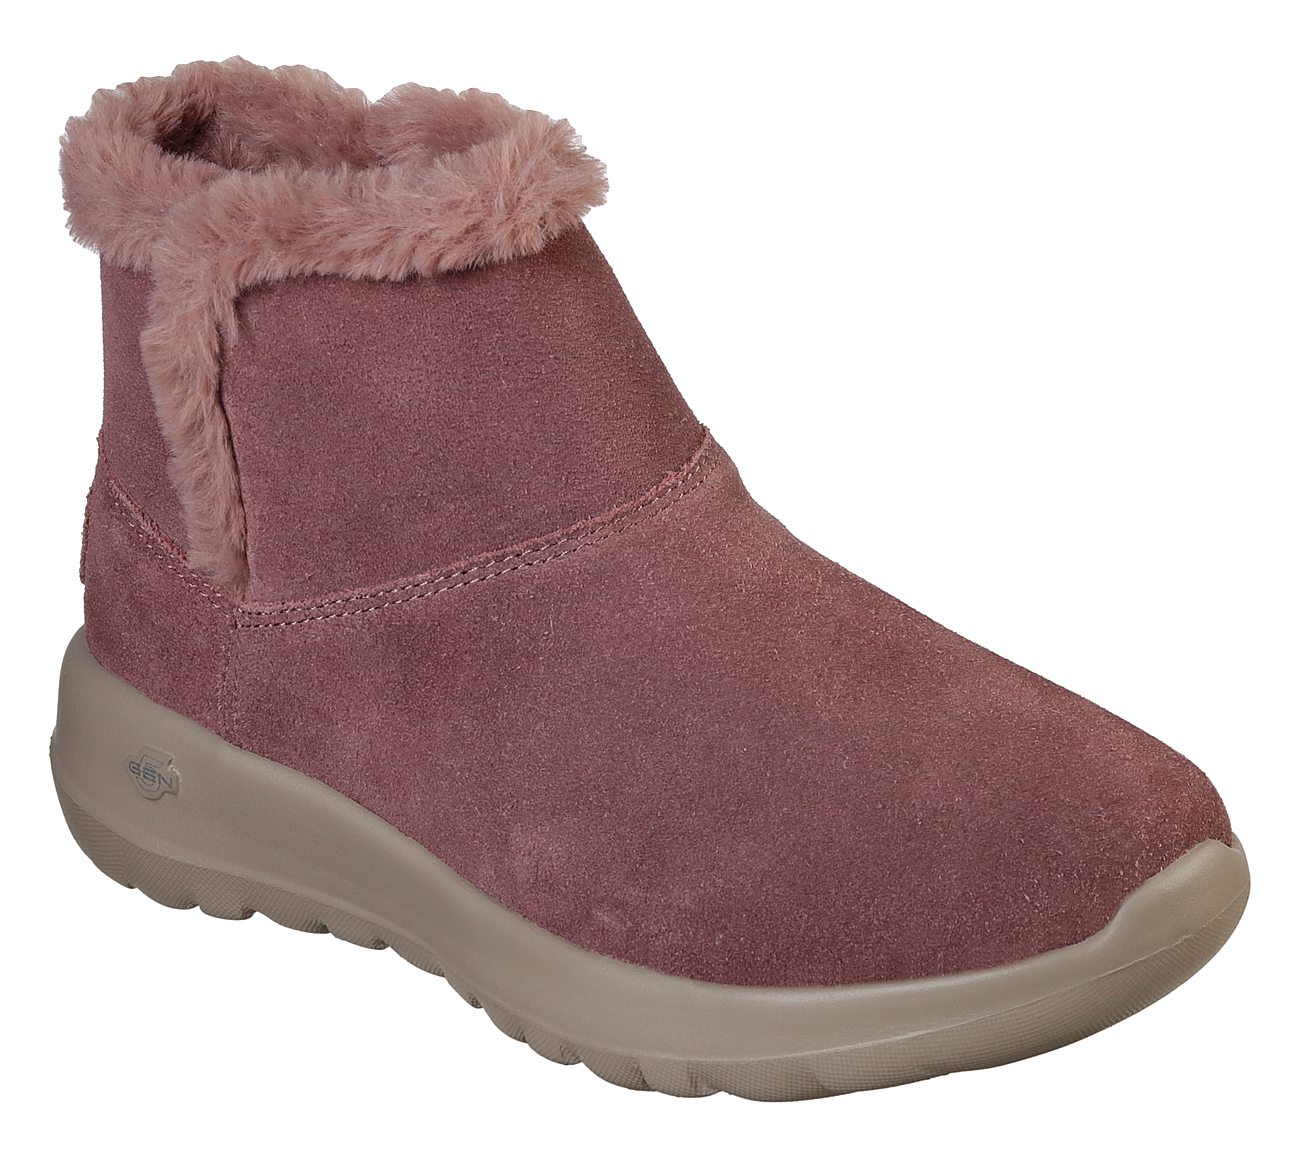 Women's Skechers On the GO Joy - Bundle Up outlet collections sale enjoy the cheapest cheap sale shopping online MBmDCHQn